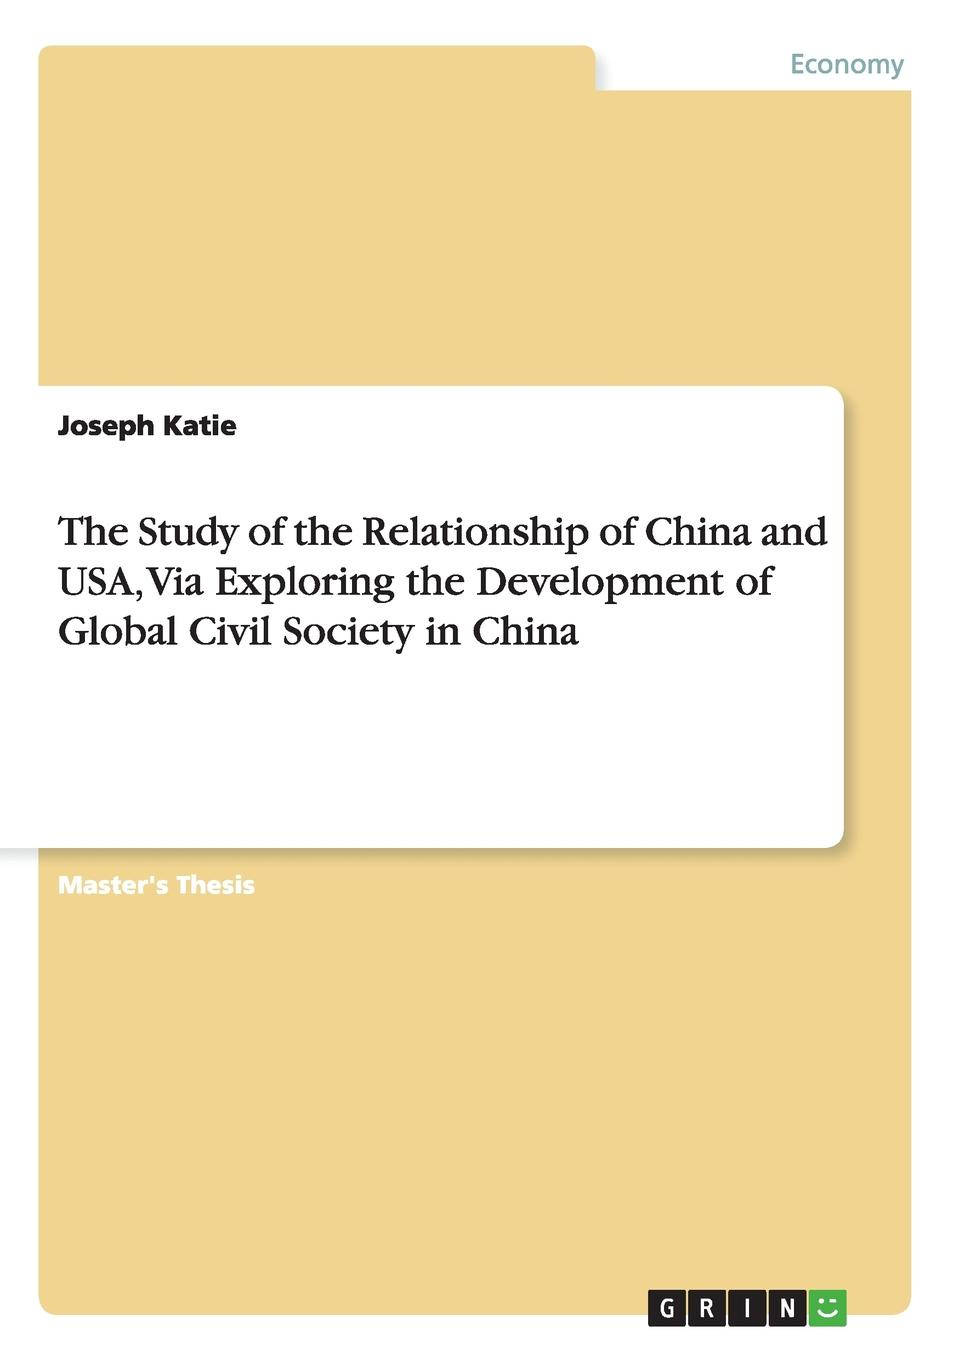 лучшая цена Joseph Katie The Study of the Relationship of China and USA, Via Exploring the Development of Global Civil Society in China